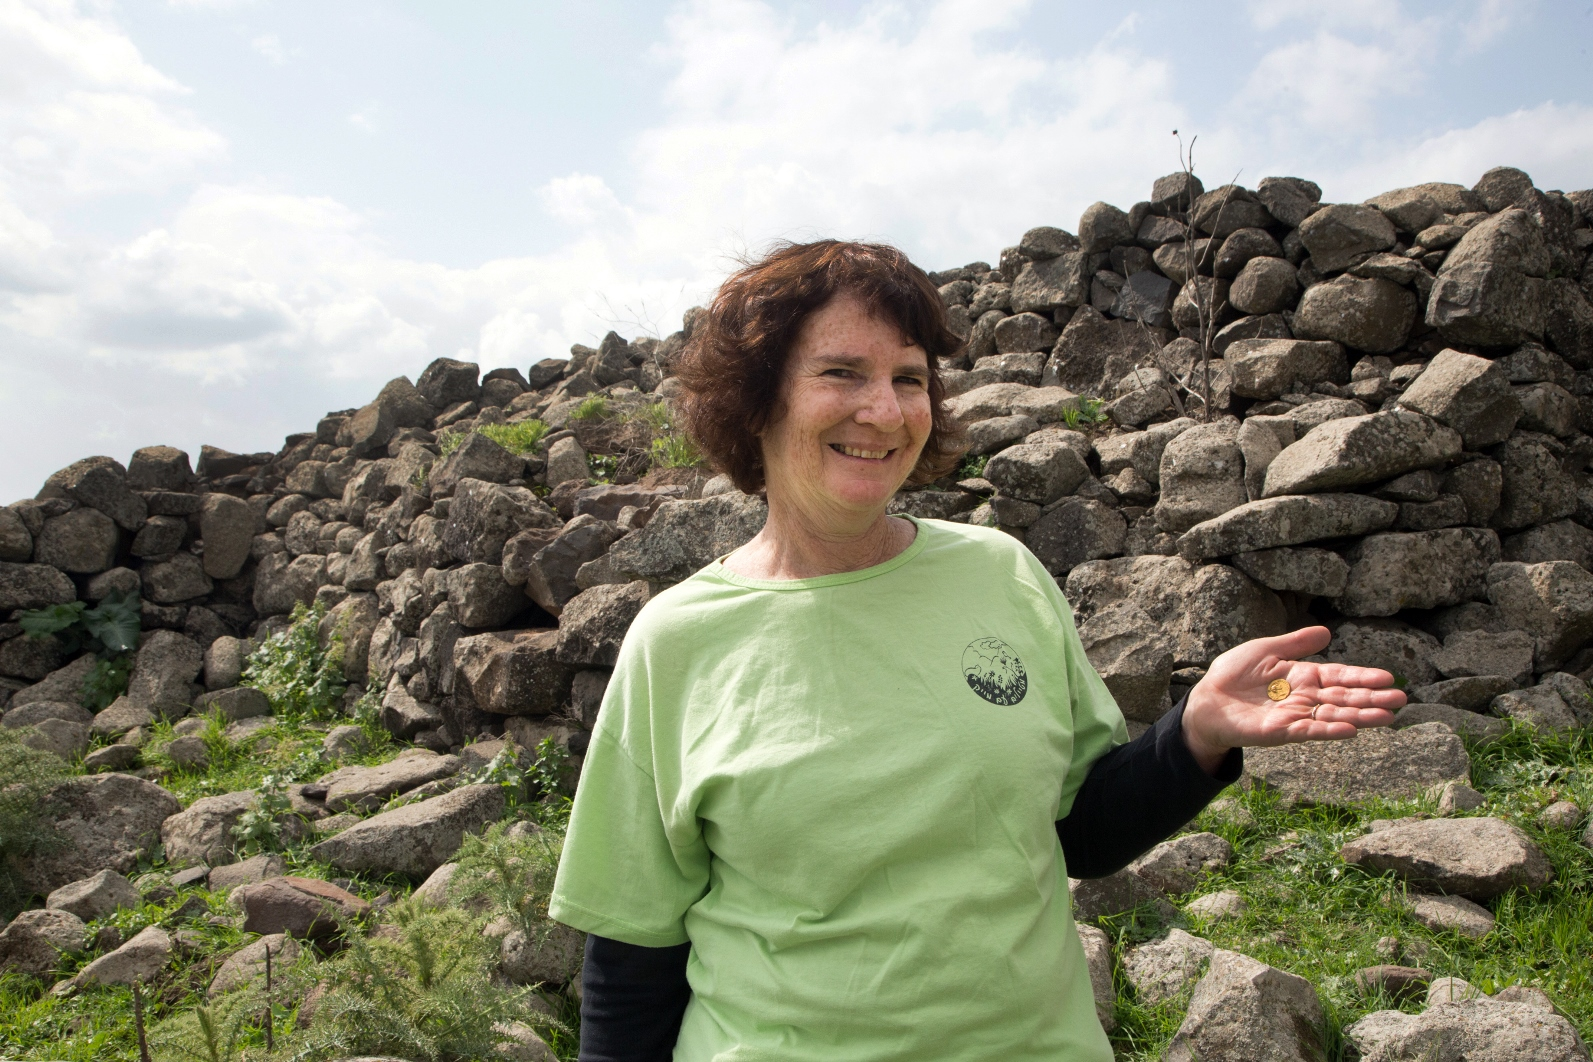 Laurie Rimon with the coin she found. Photo by Samuel Magal/Israel Antiquities Authority